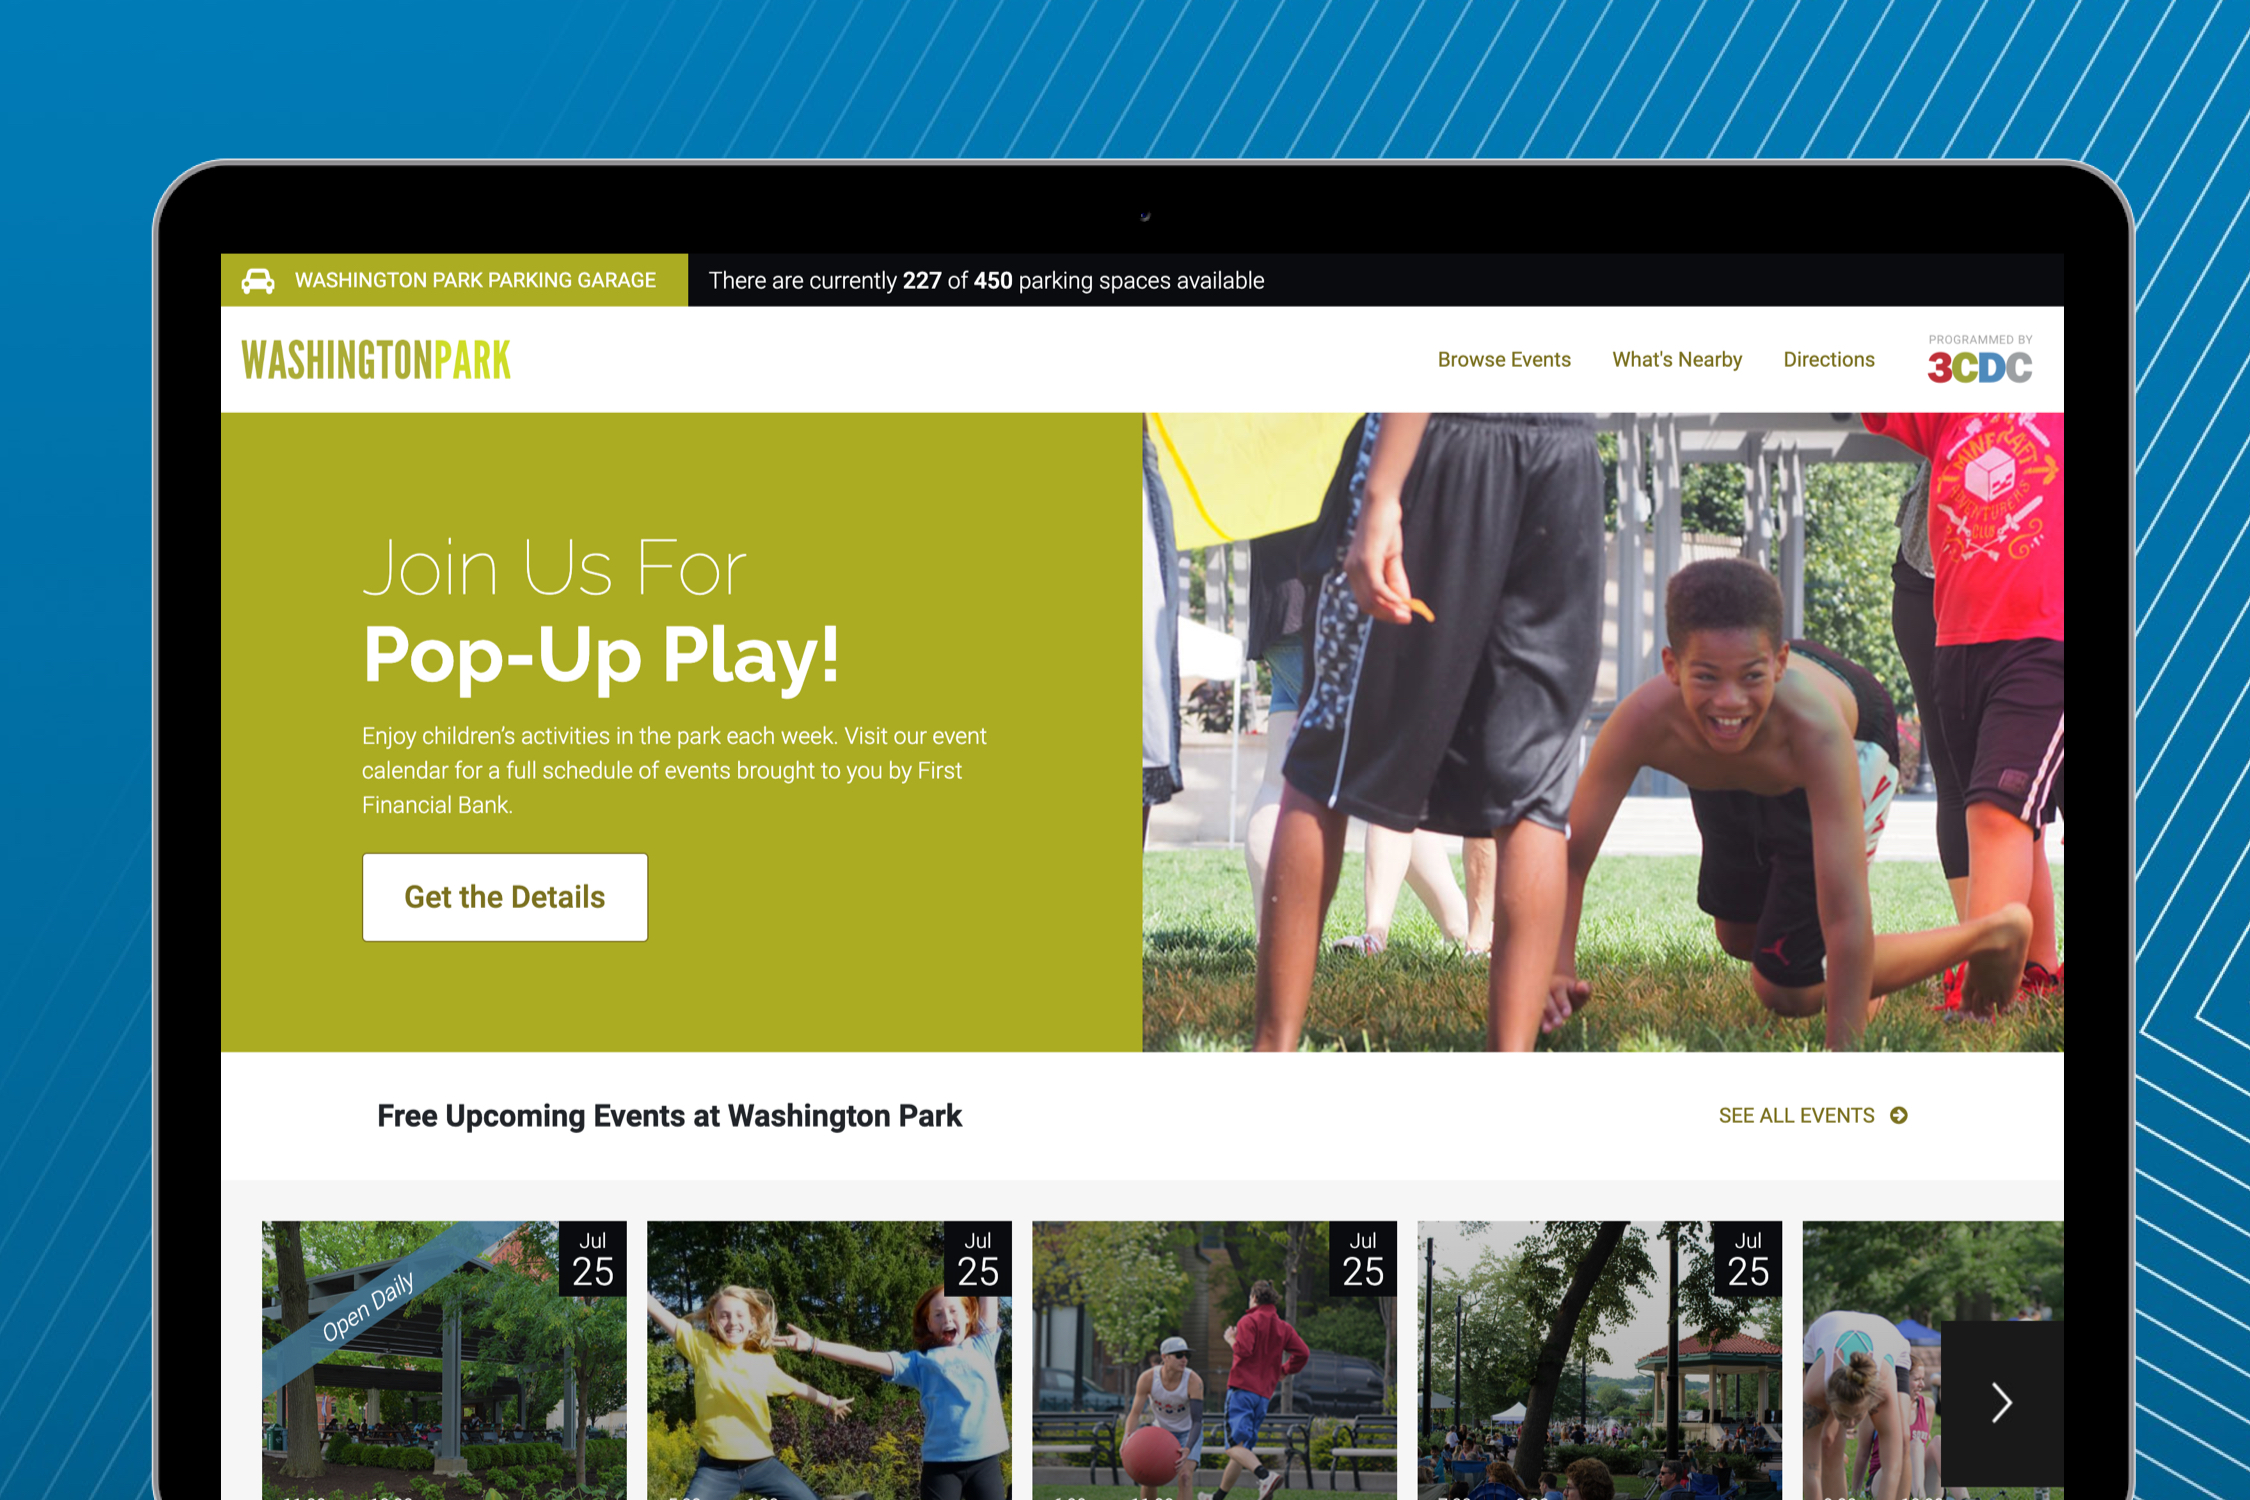 Mockup of Washington Park's website homepage